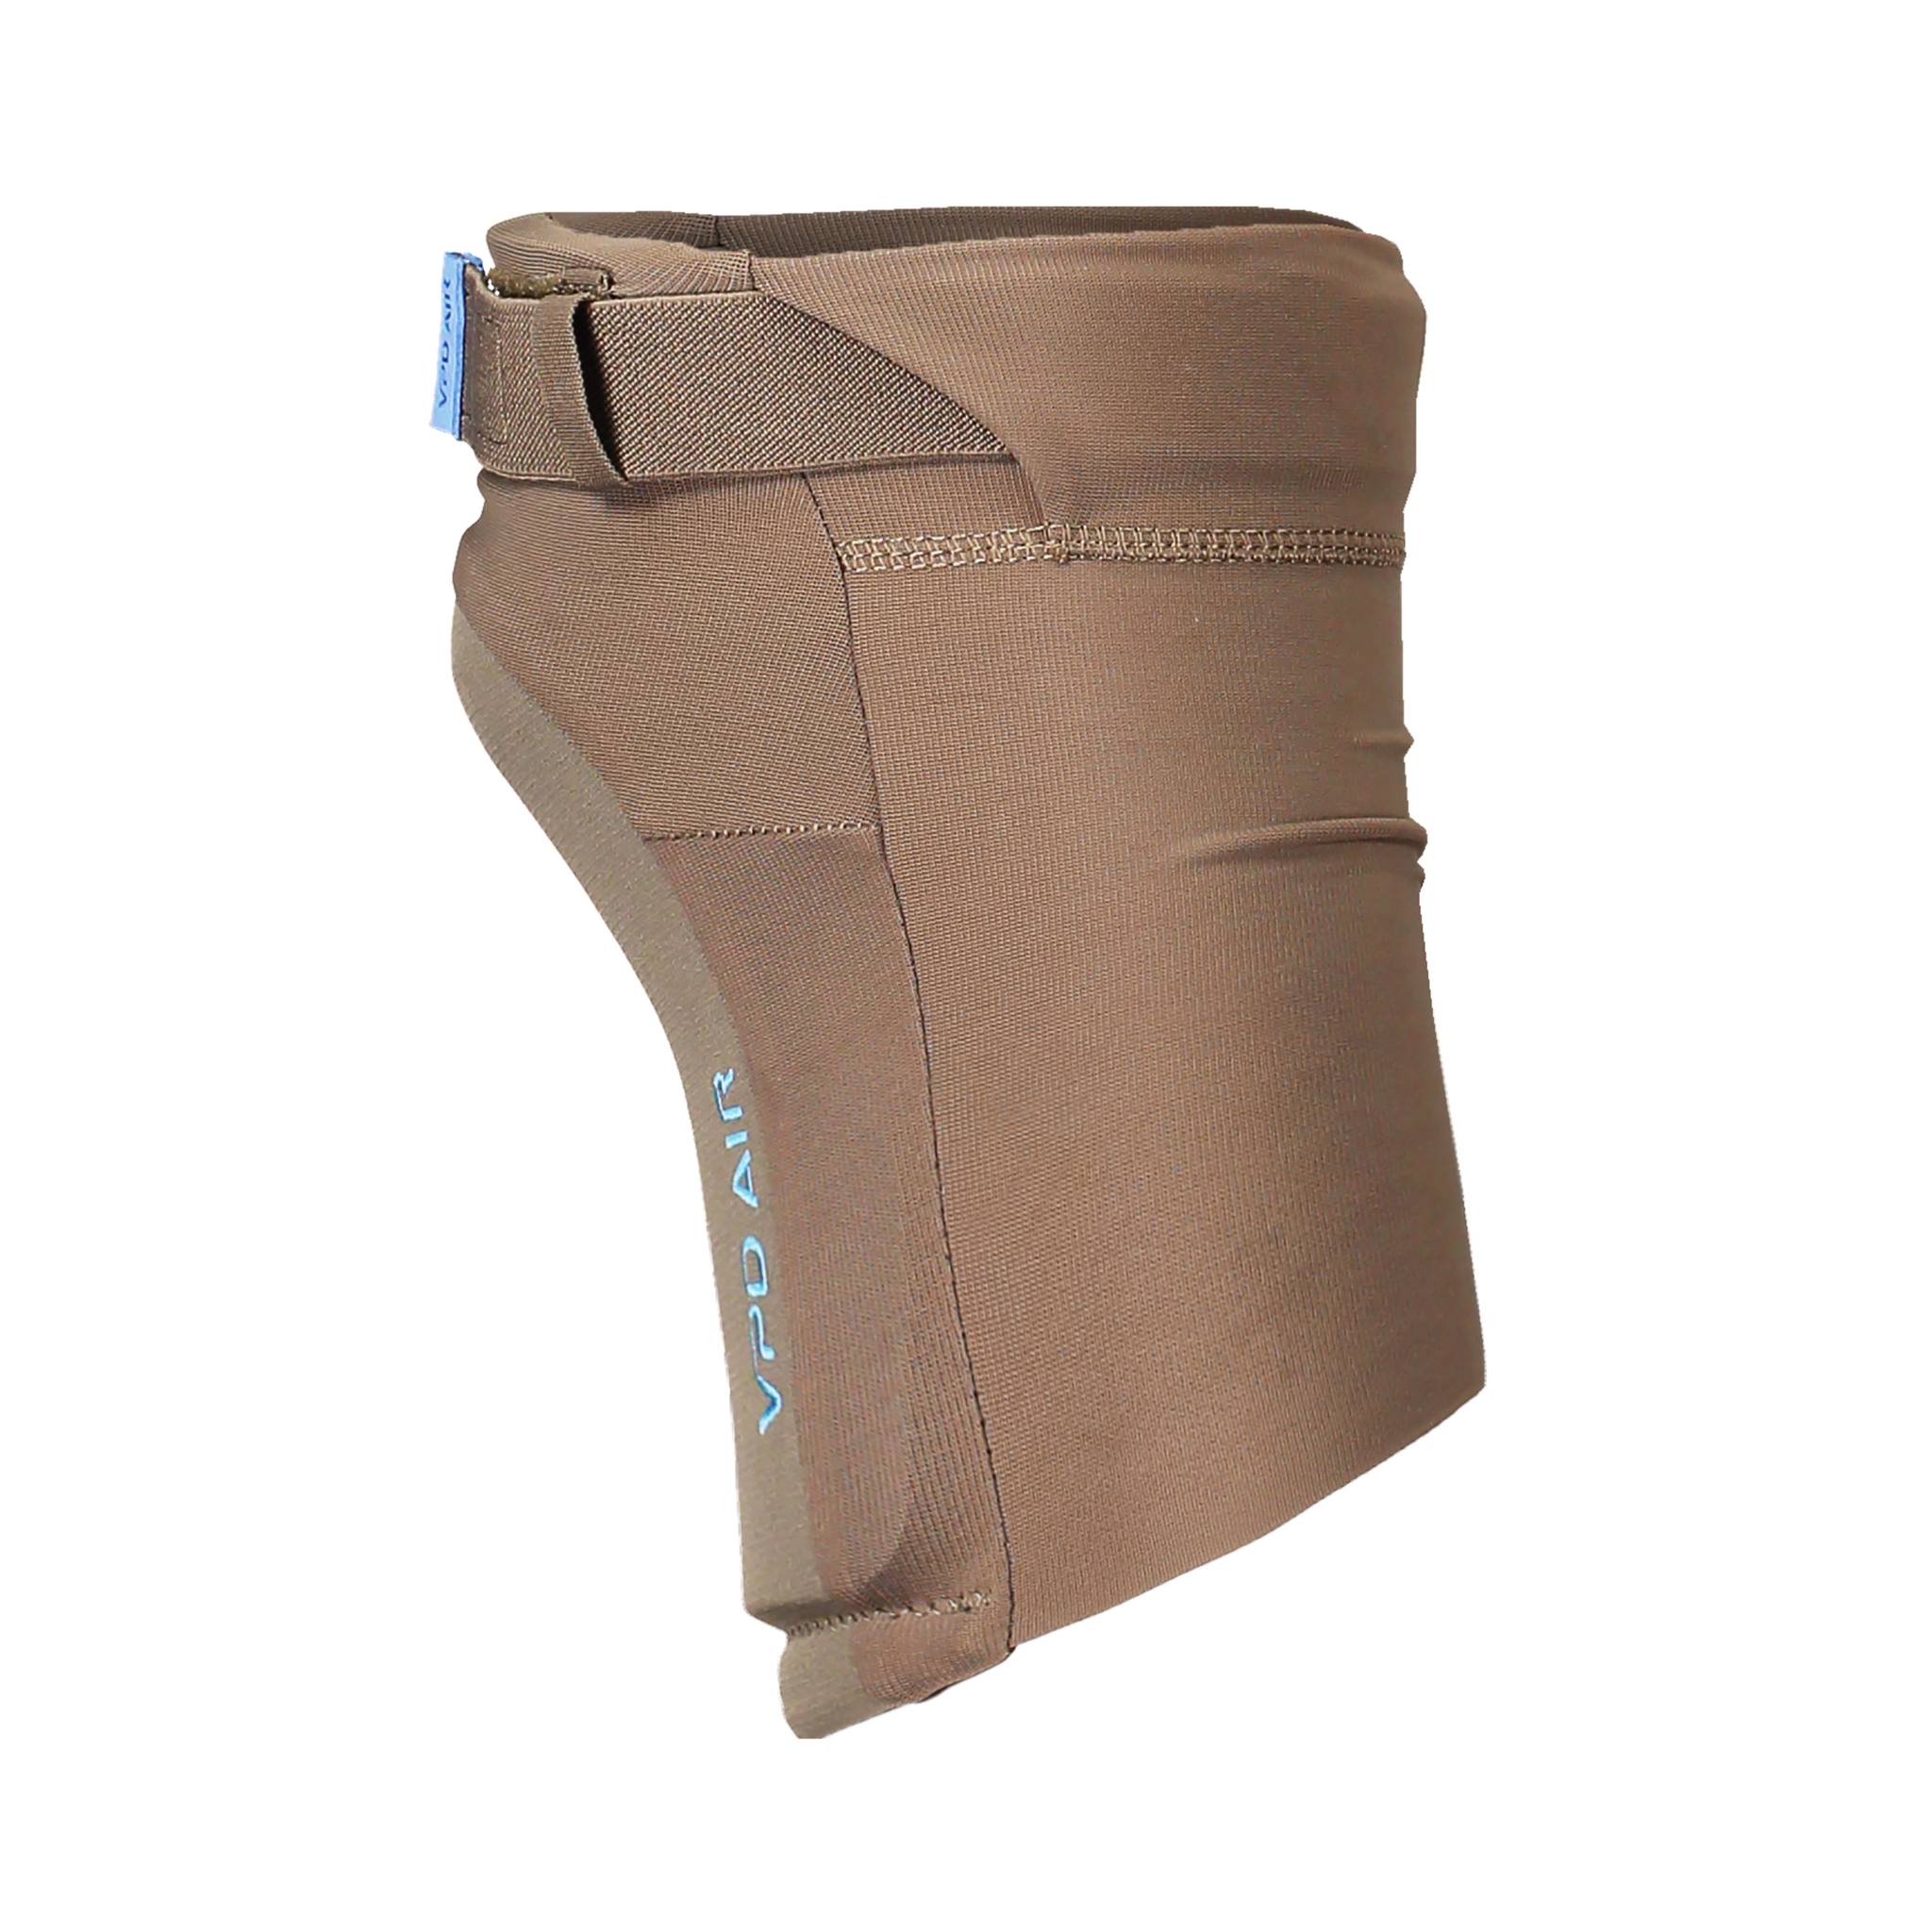 POC Joint VPD Air Knee - Size L - Tan-3